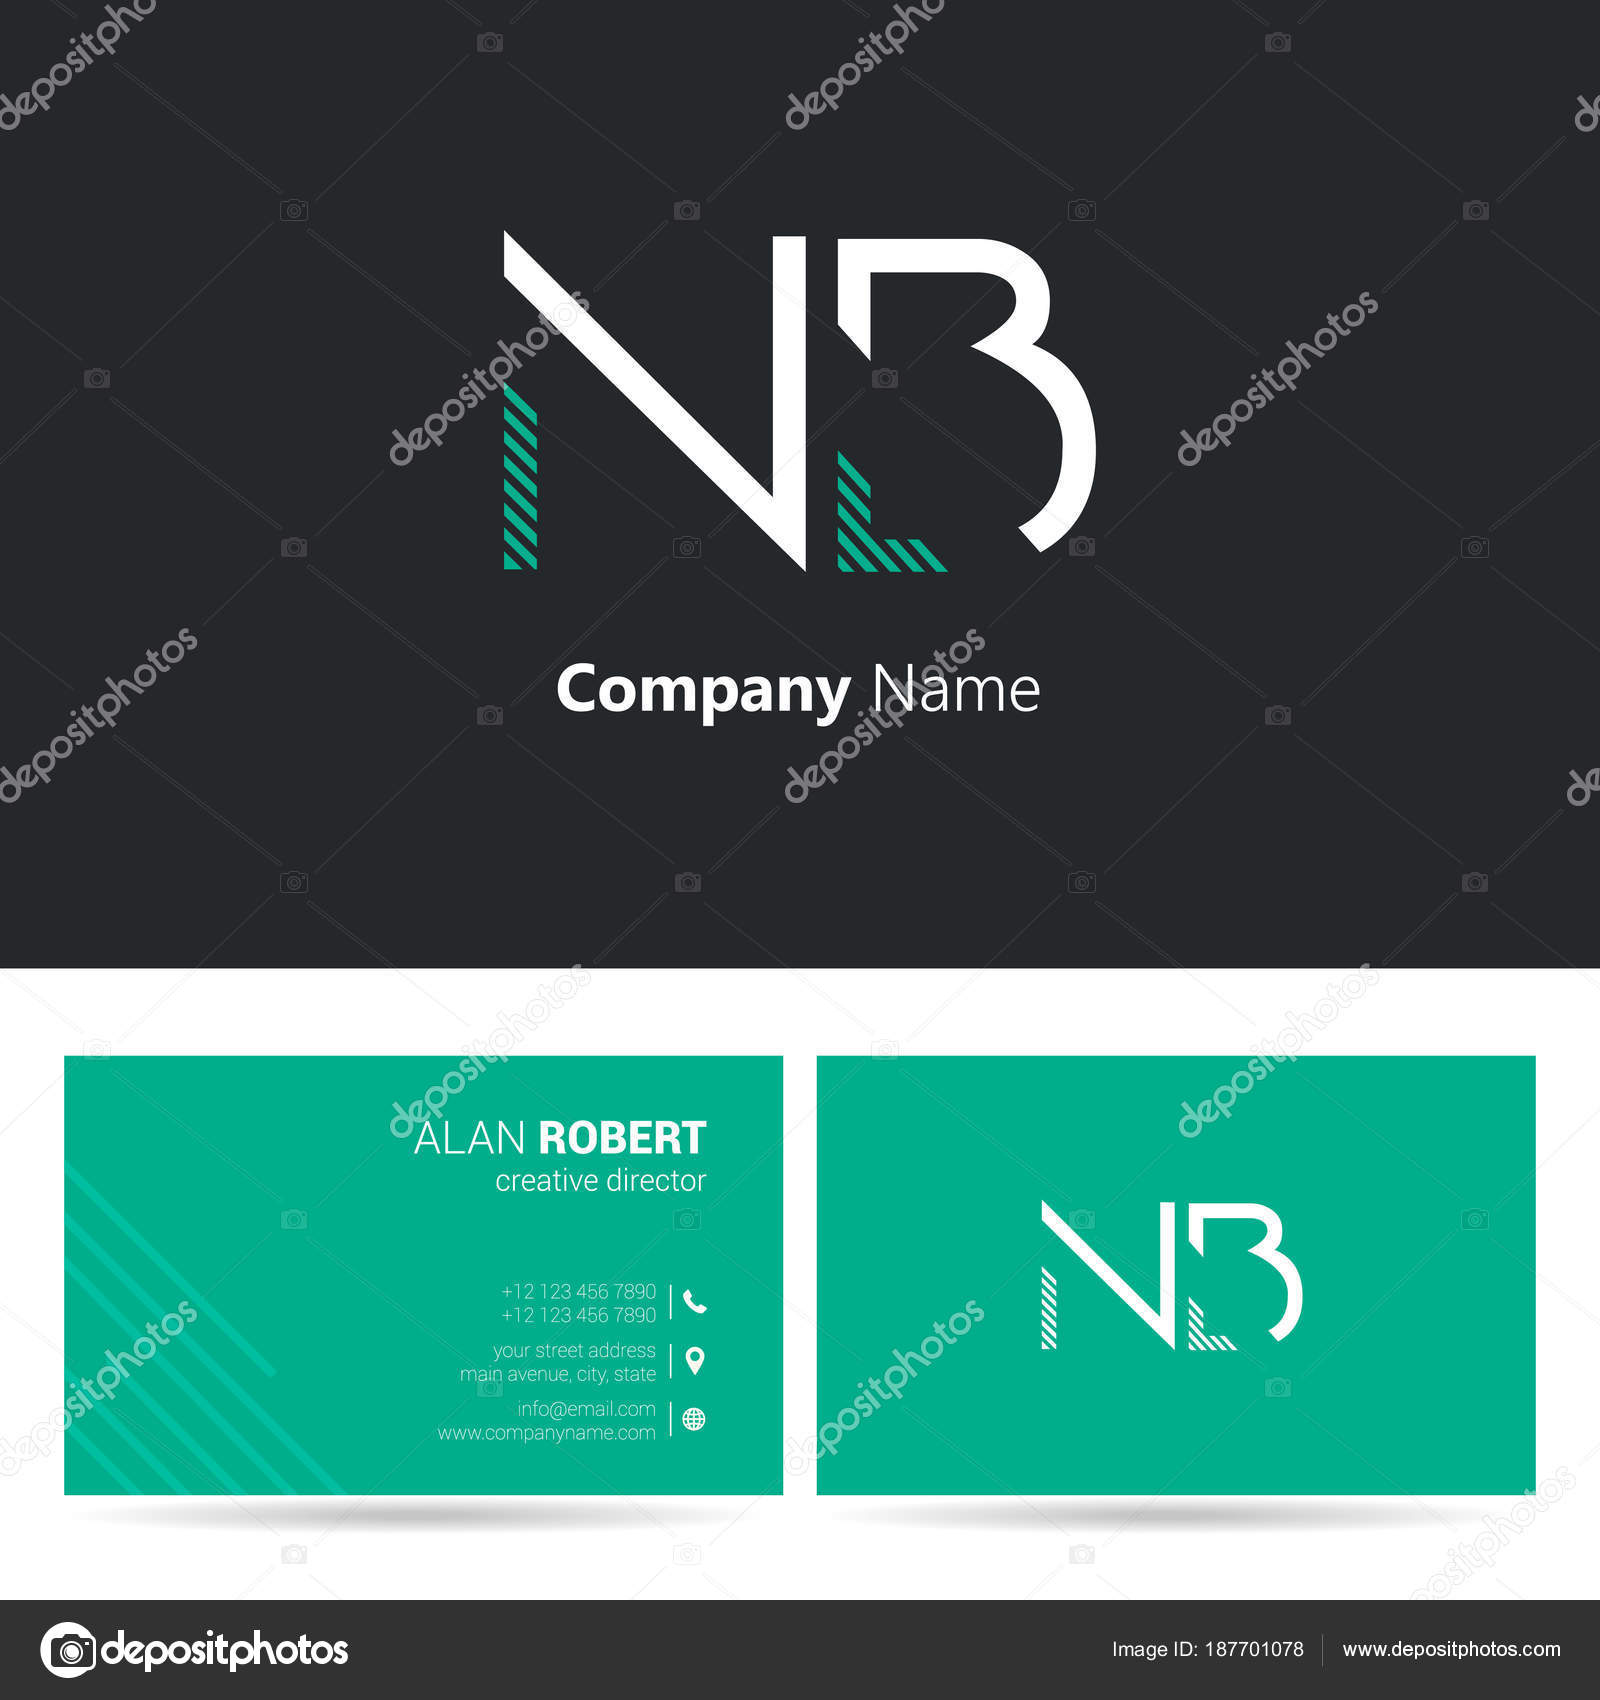 Multi color logo business card template stock vector deepzdzyn multi color logo business card template stock vector reheart Choice Image